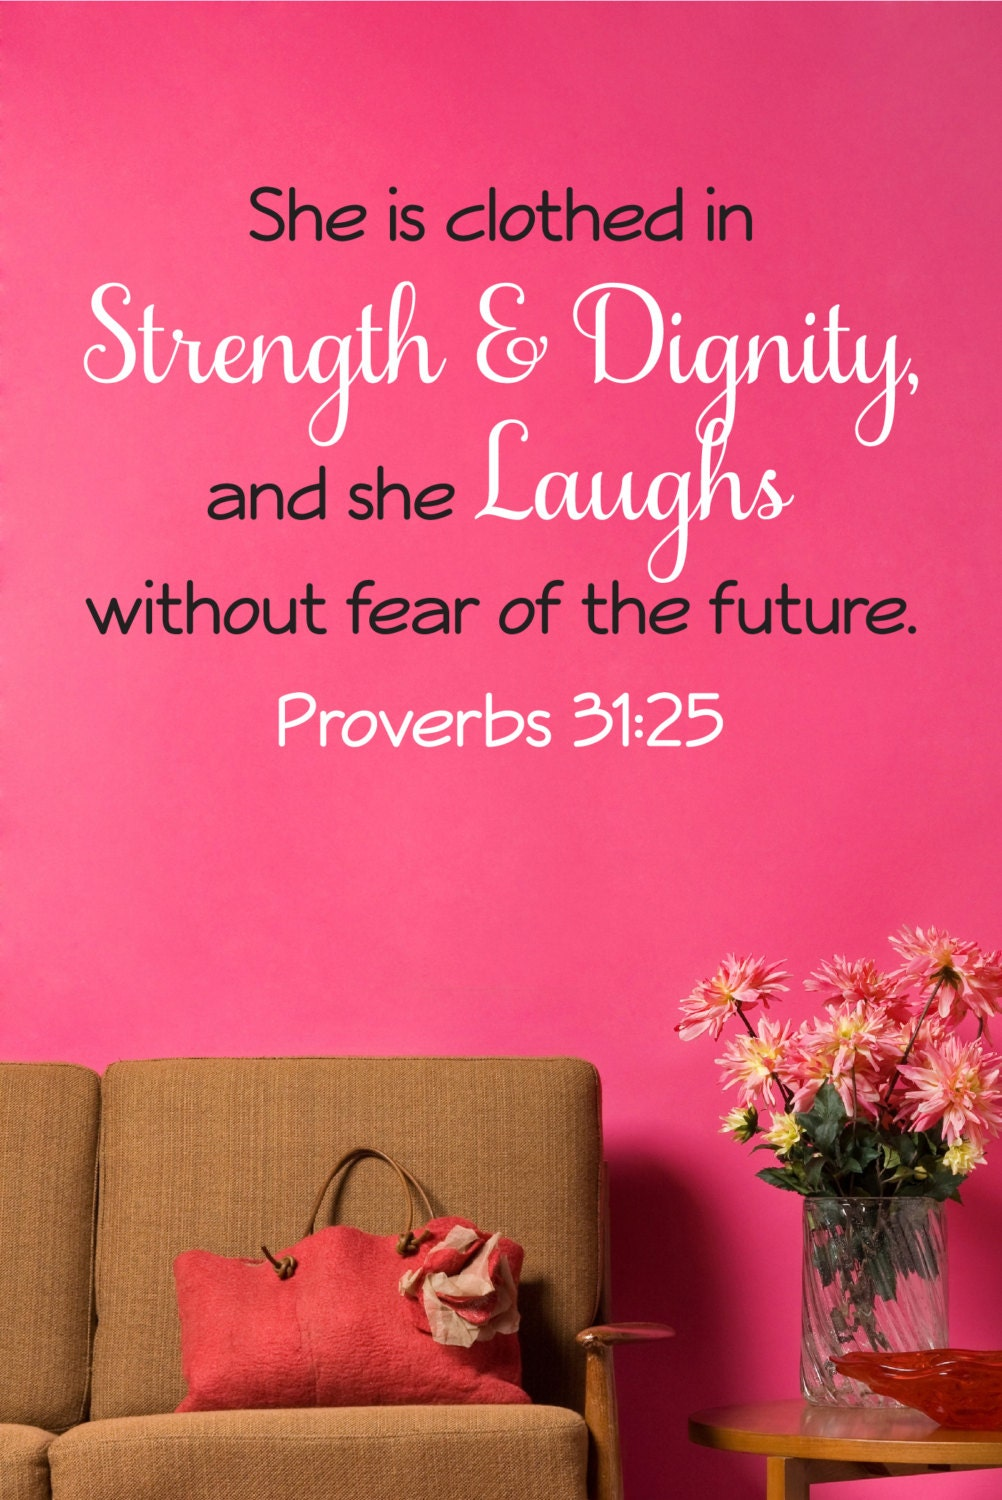 bible quote decals wall decal wall vinyl vinyl decal. Black Bedroom Furniture Sets. Home Design Ideas